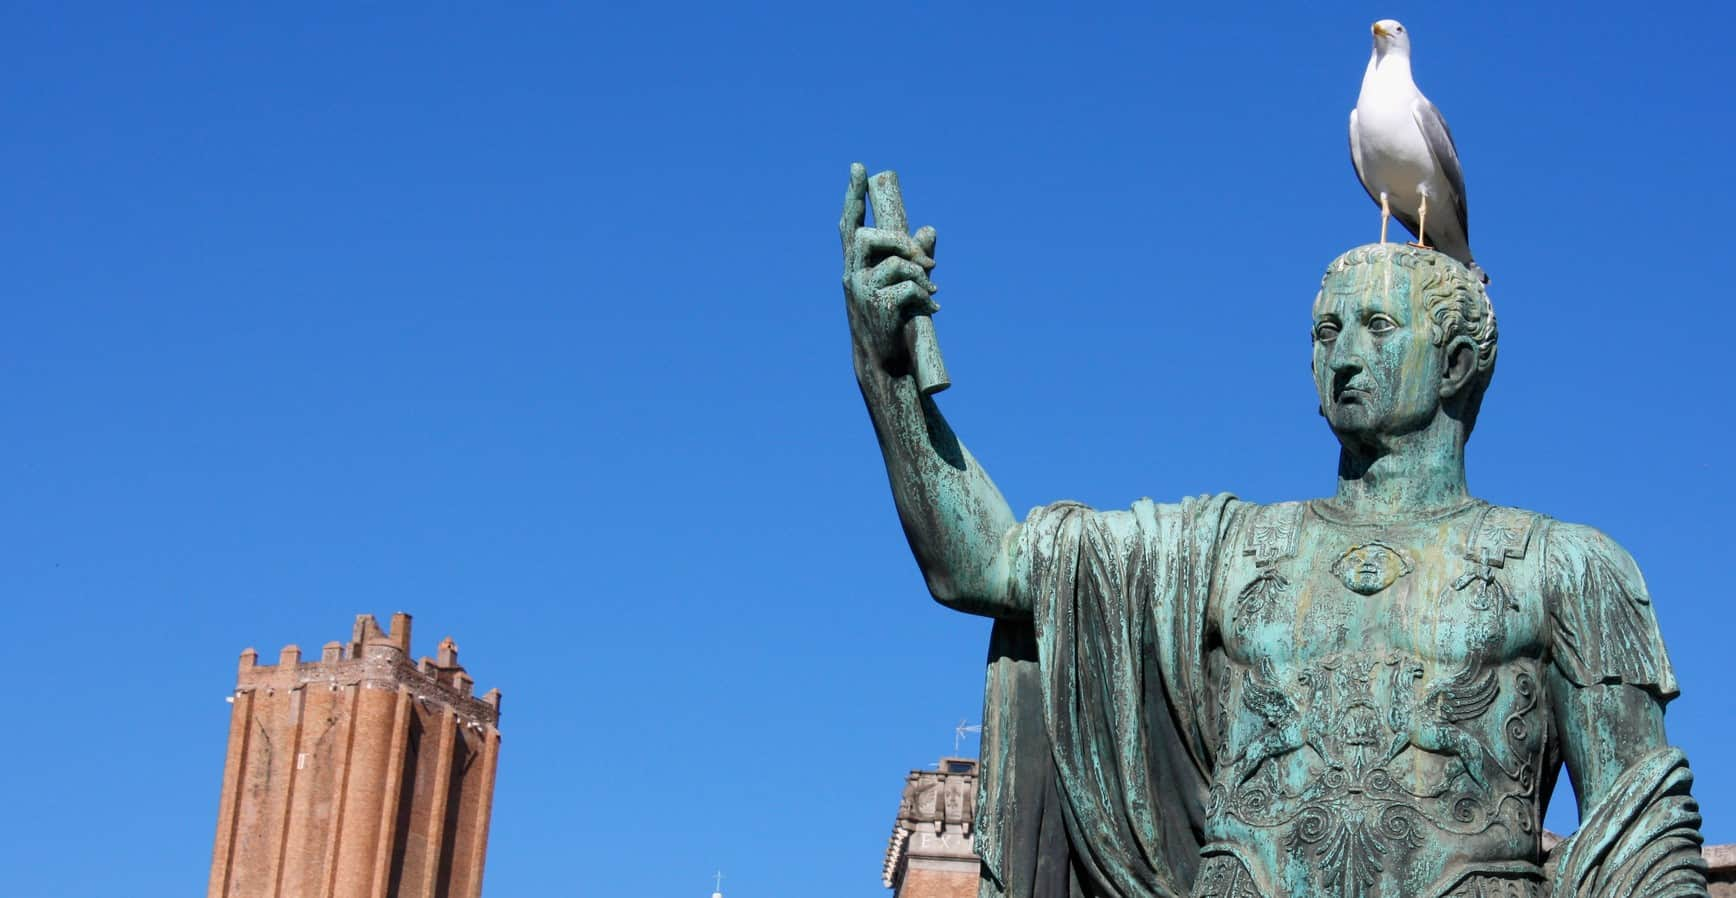 Statue of Nero with a Bird on his Head